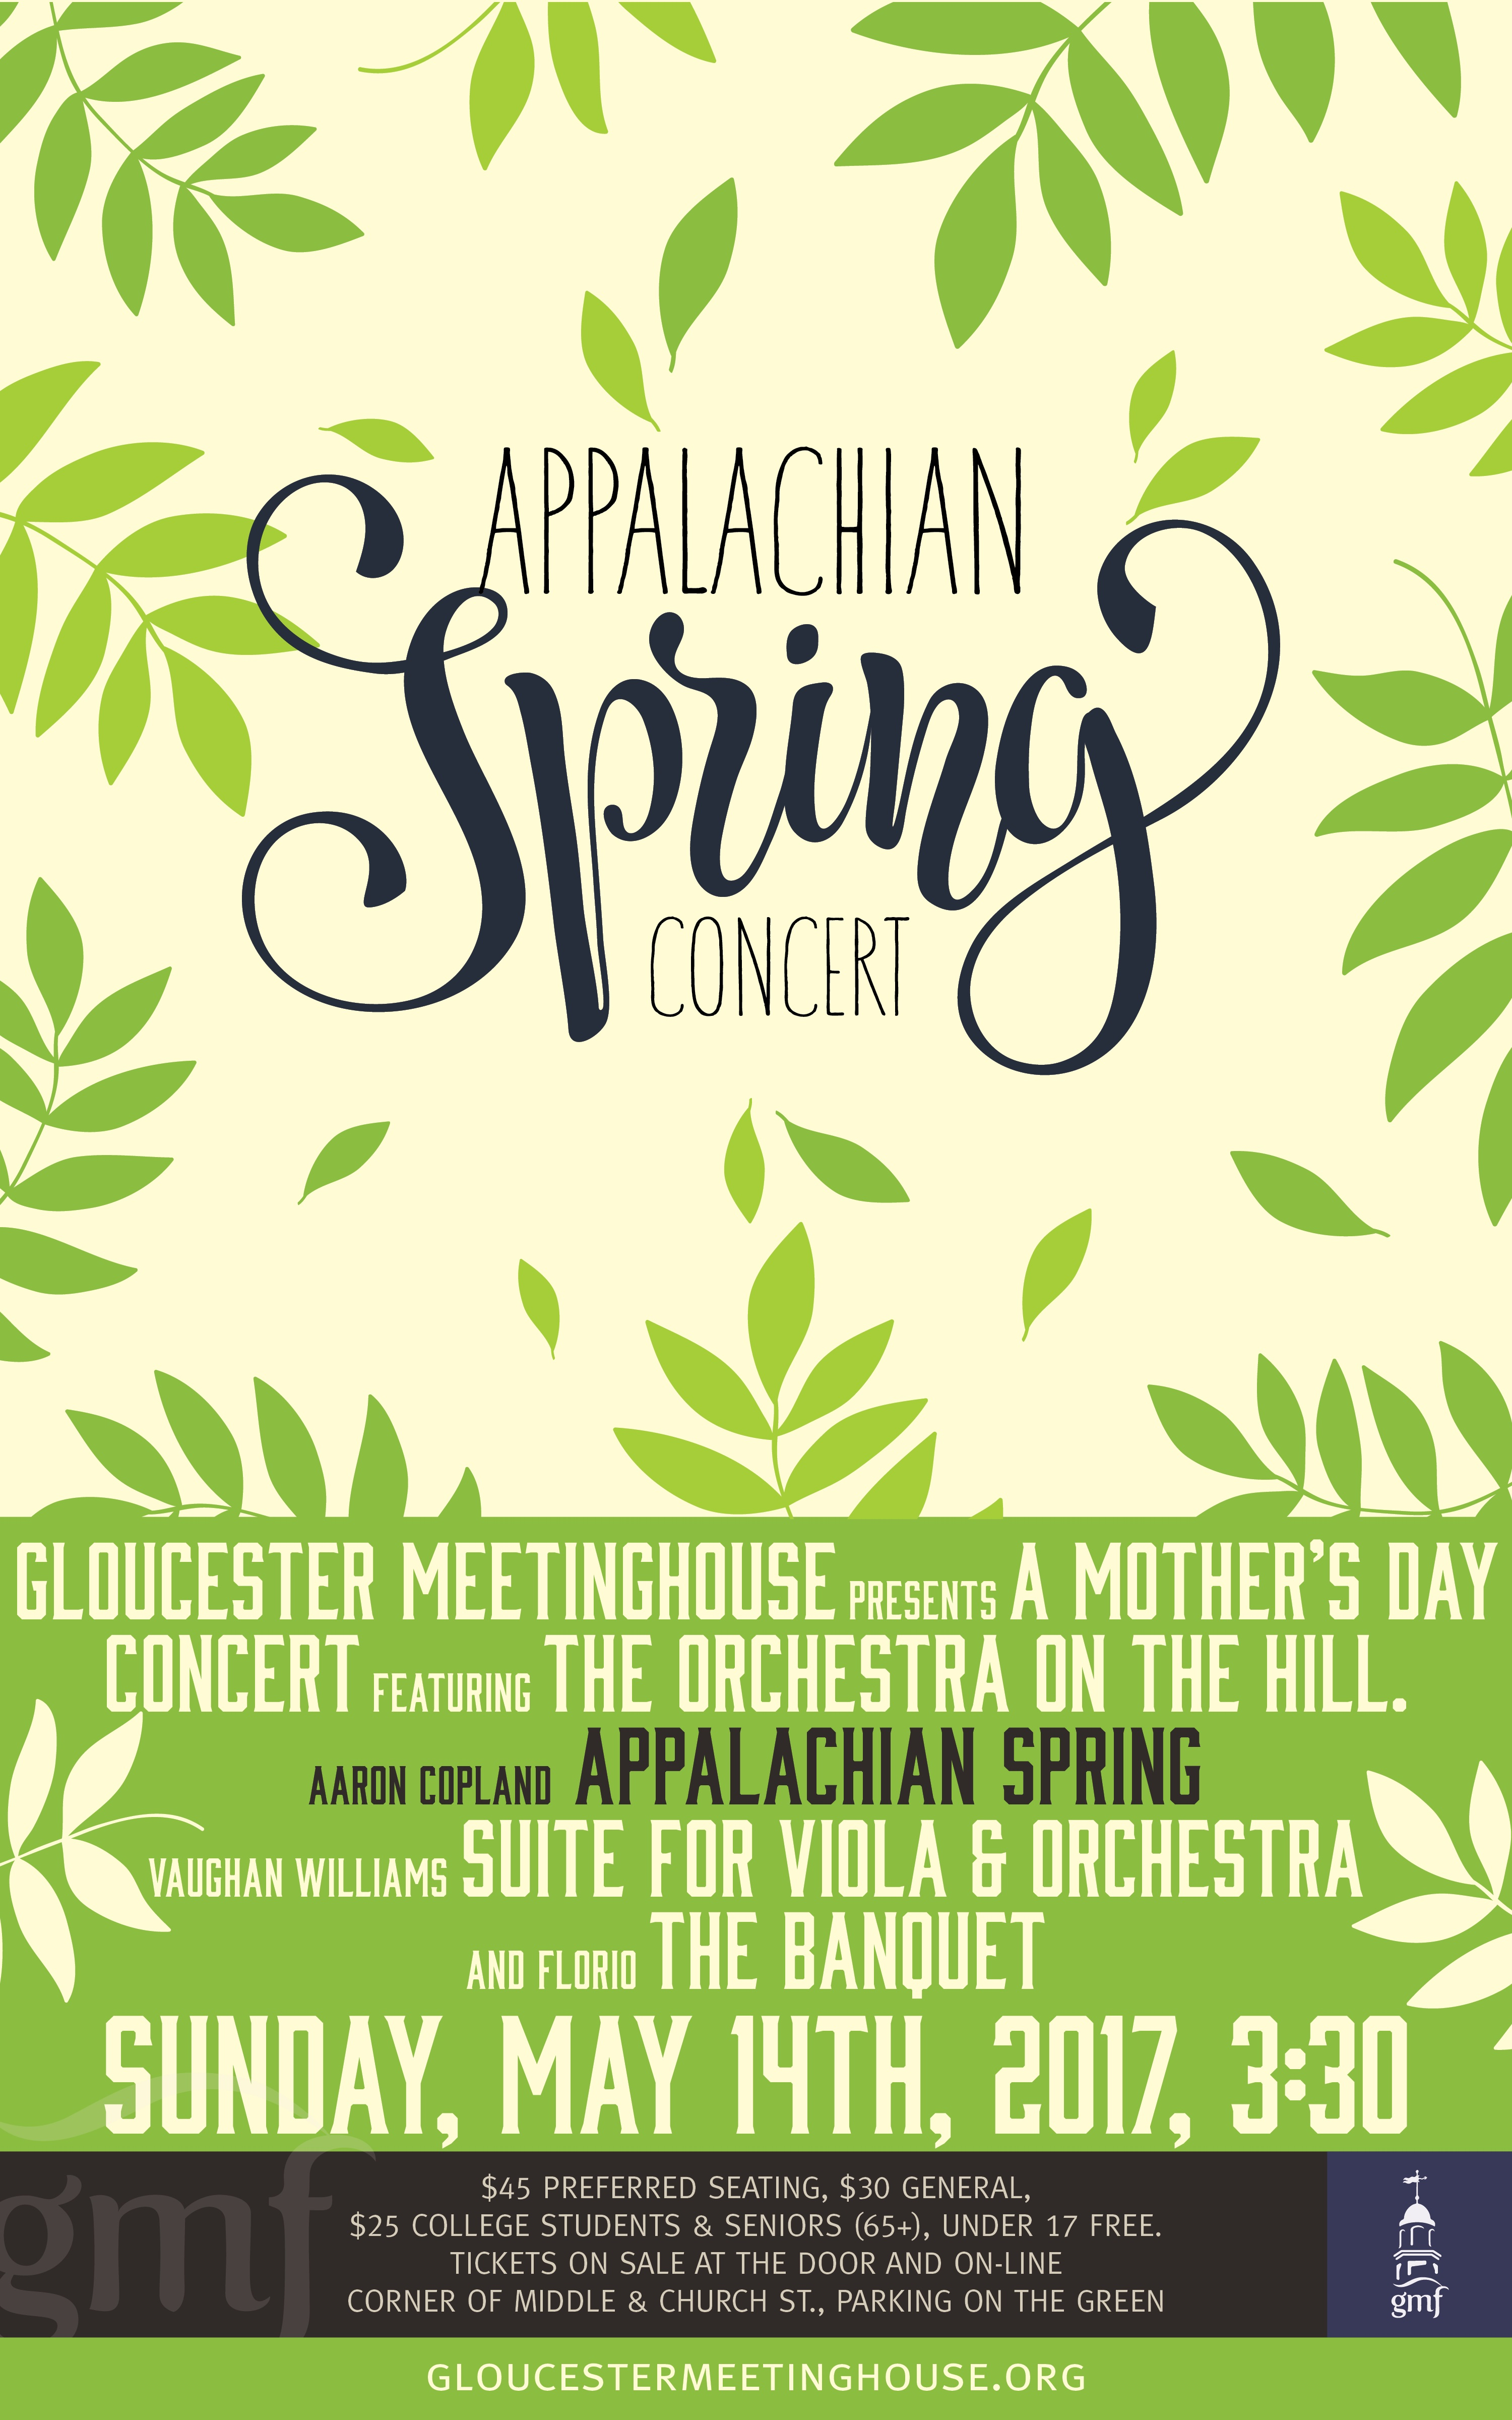 Gloucester Meetinghouse Mother's Day Concert to Featuring Copland's